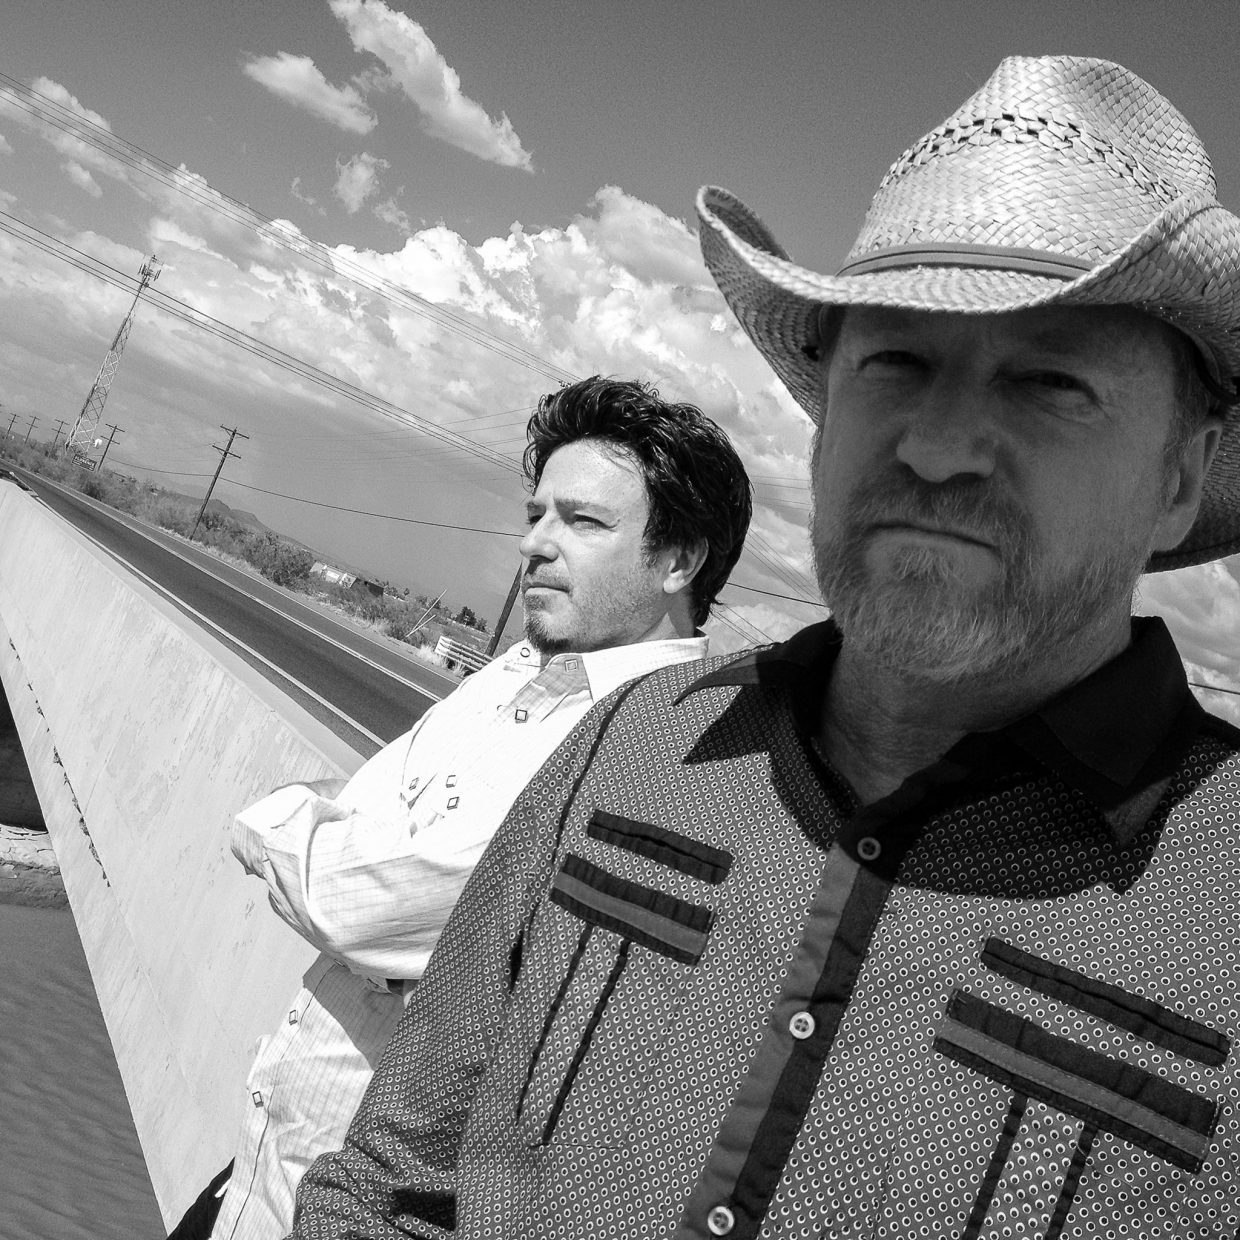 Alternative rock band Cracker led by singer David Lowery and guitarist Johnny Hickman, will play at 7 p.m. on Monday at the Chief Theater.